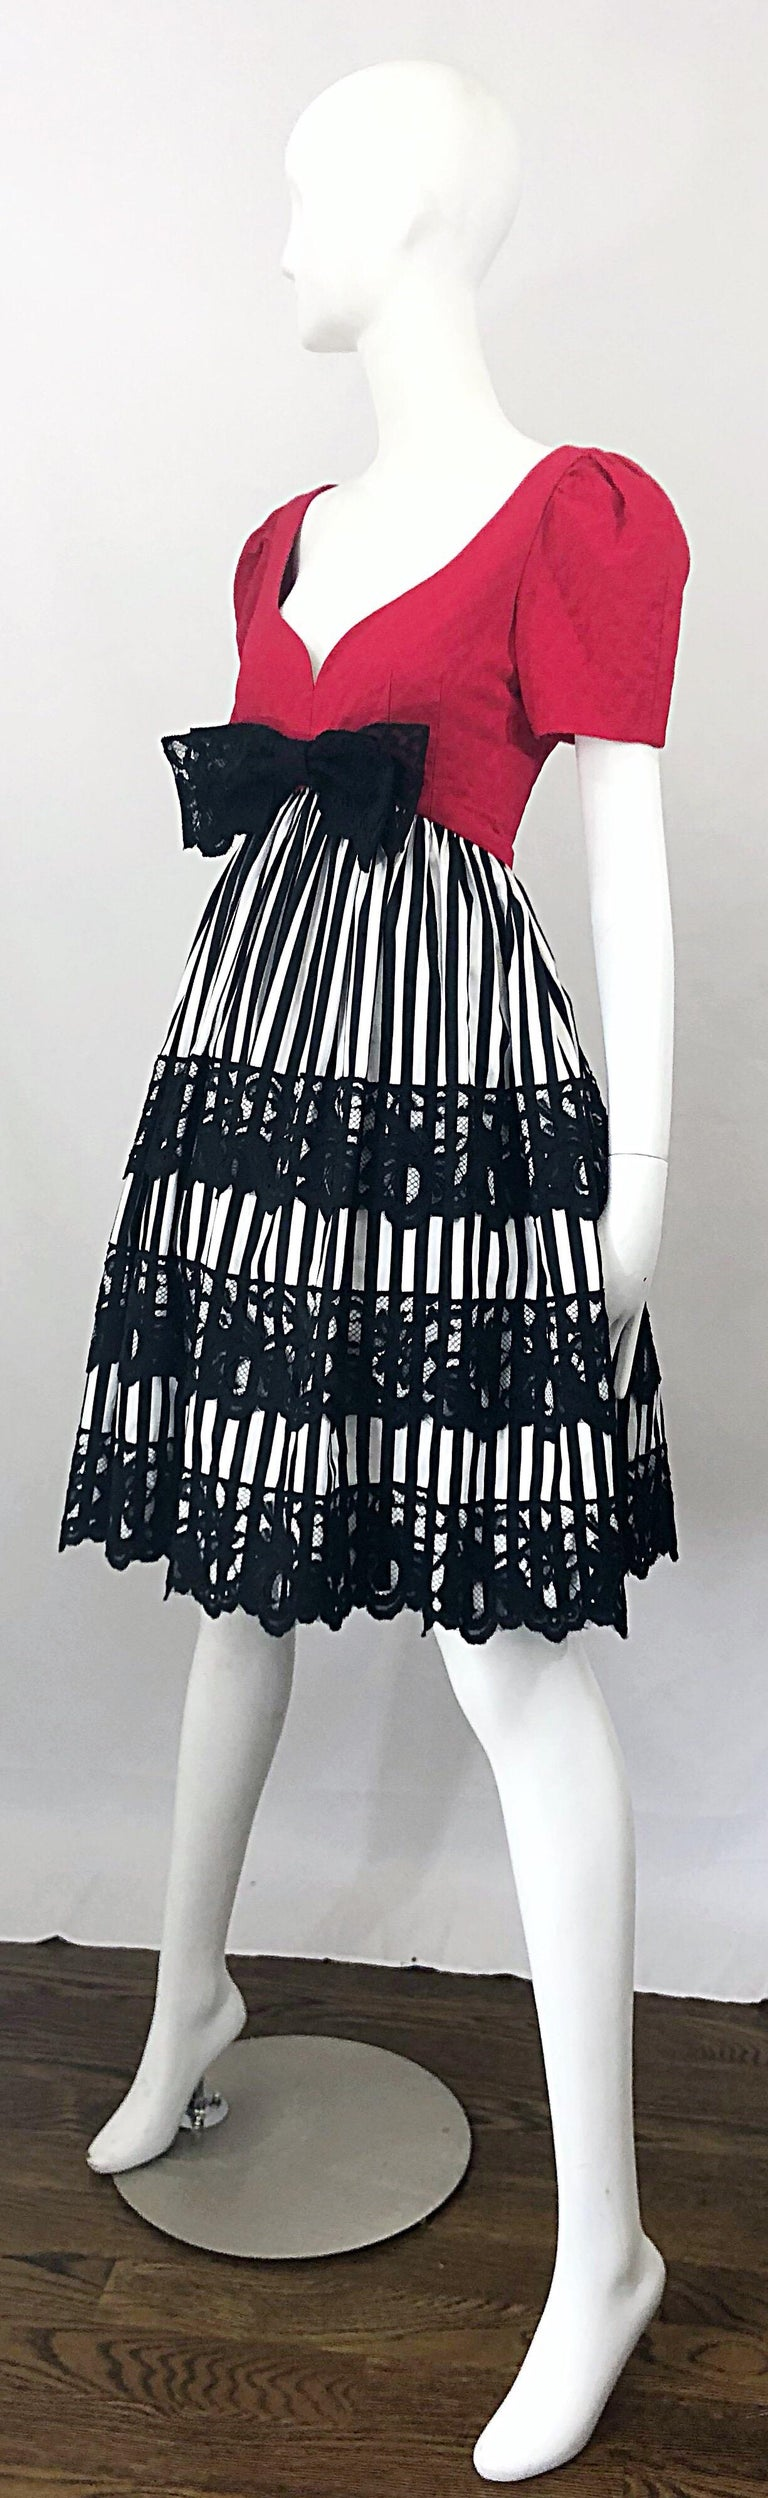 Vintage Adele Simpson Red + Black + White Fit n' Flare Empire Bow Lace Dress For Sale 2